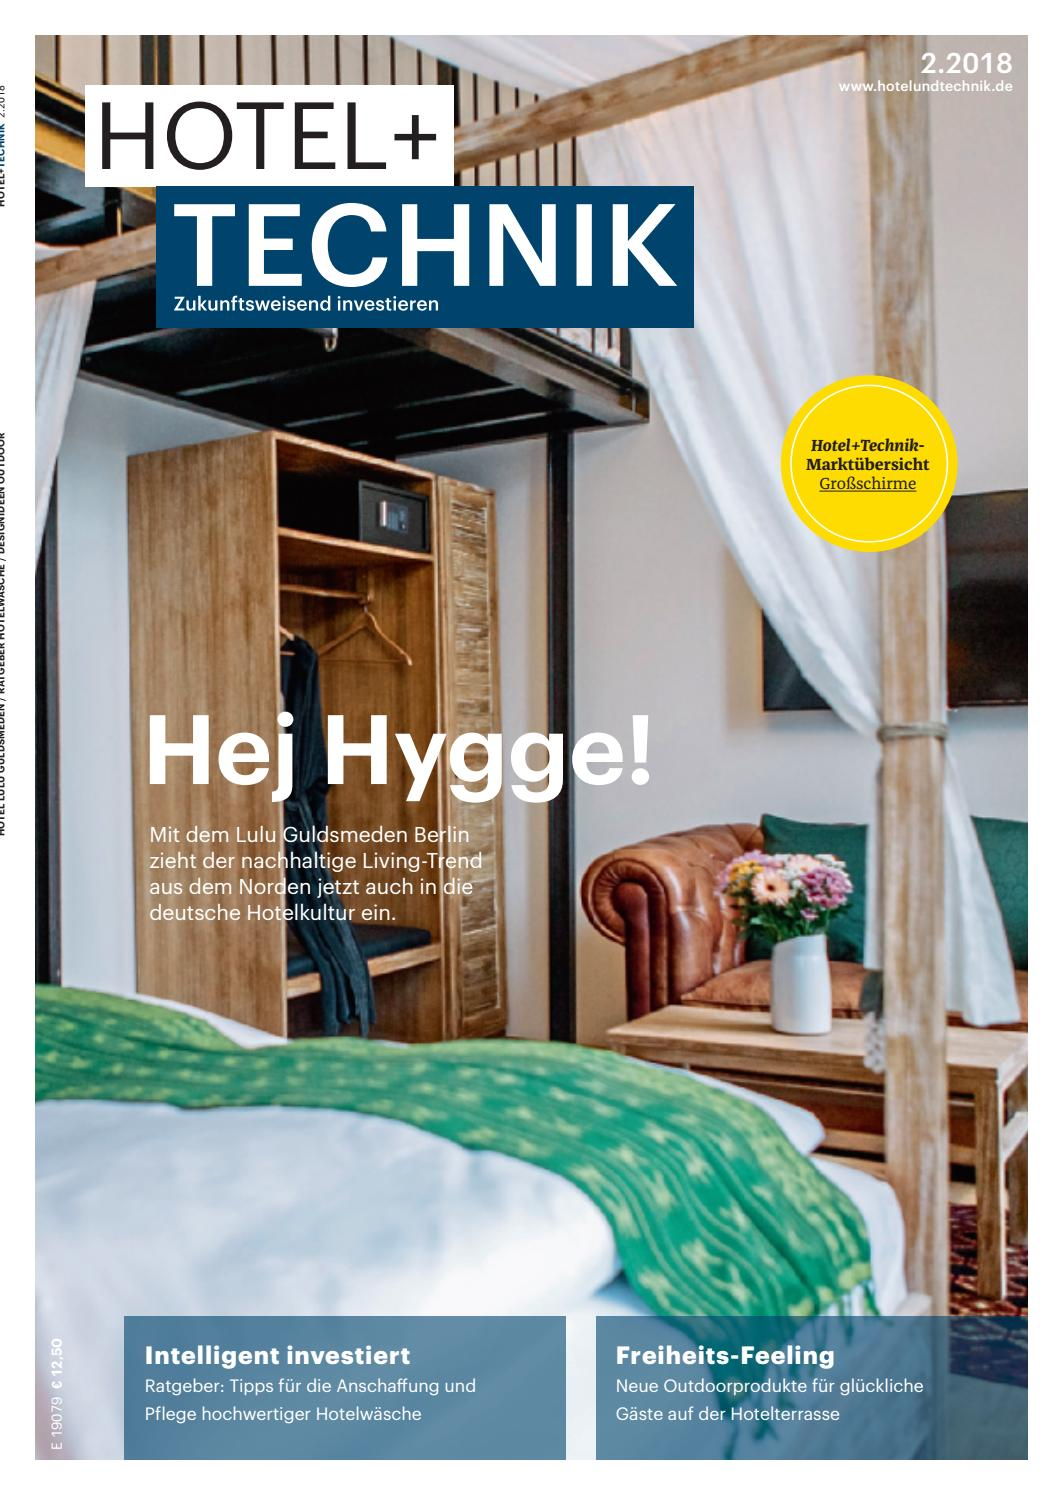 Wäschekrone Bettdecken Hotel Technik Magazine By Rai Amsterdam Issuu